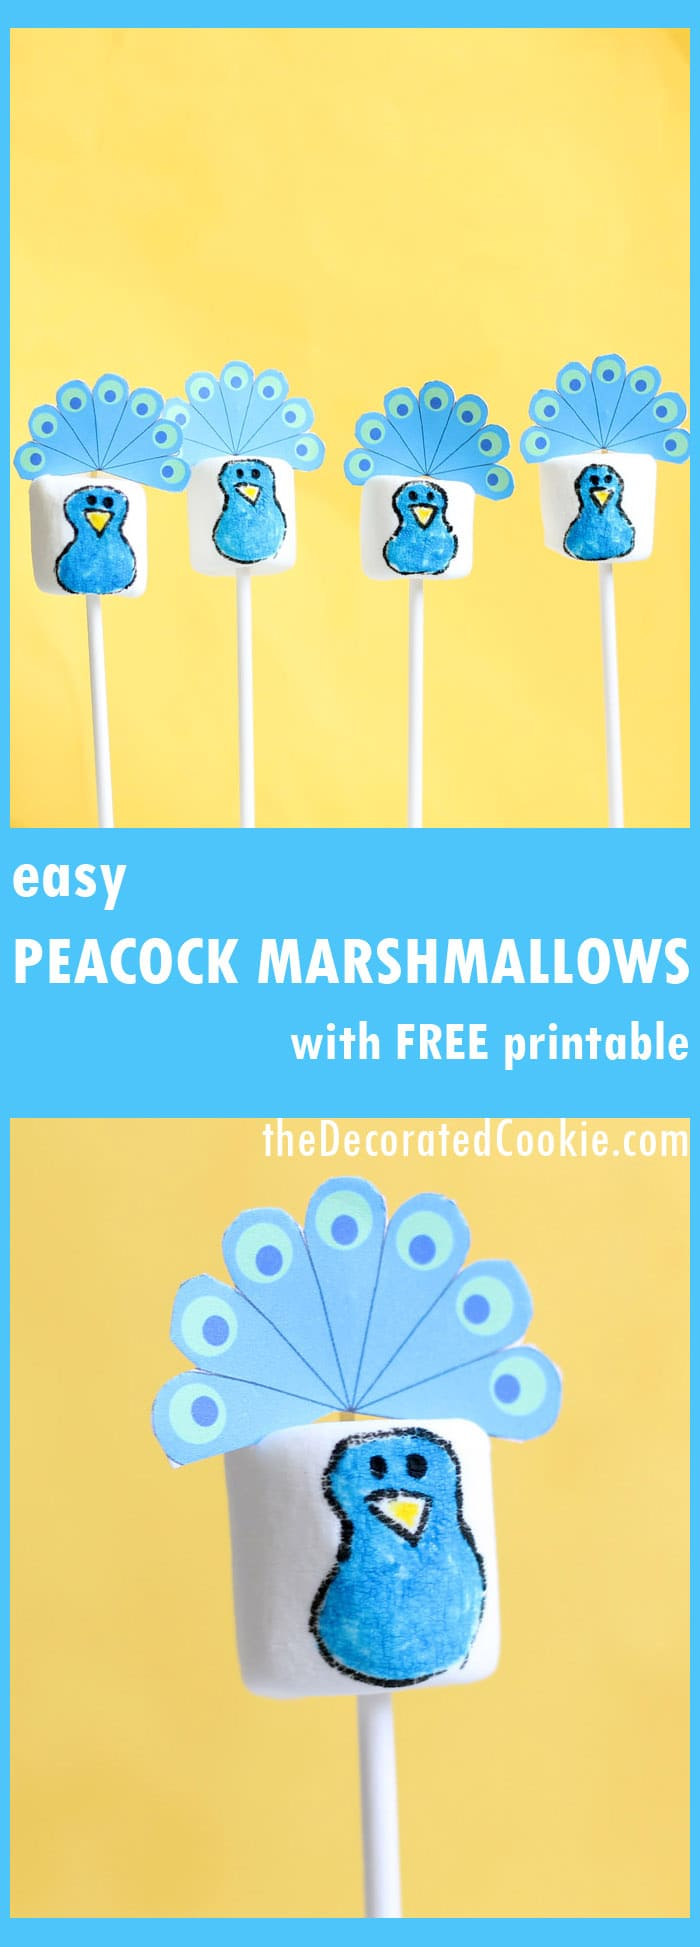 peacock marshmallows with free printable